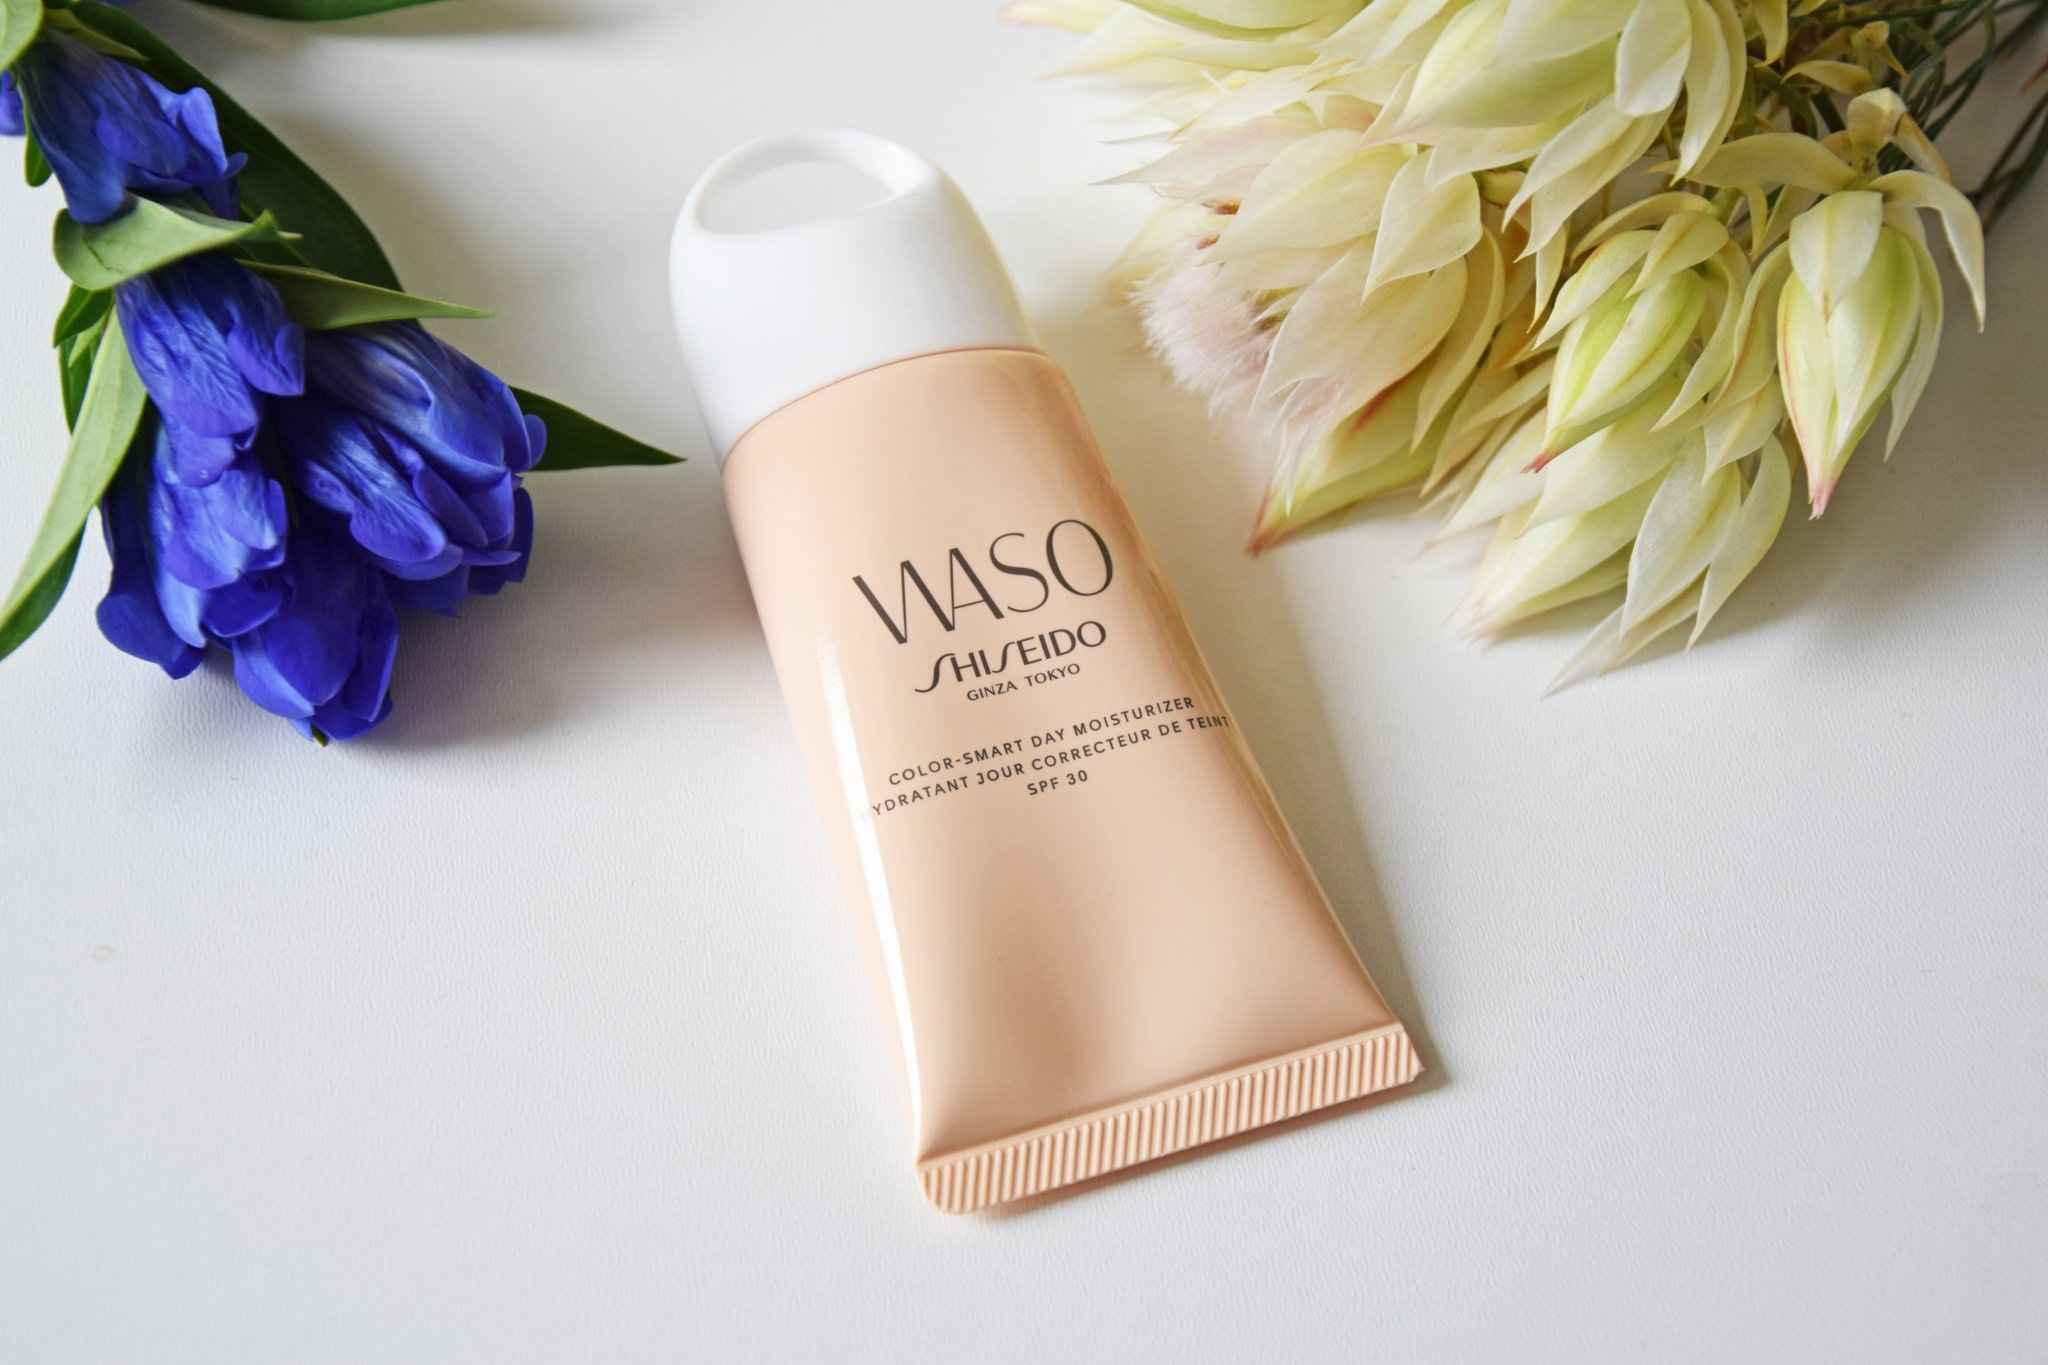 Shiseido - WASO: Color-smart Day Moisturizer SPF30